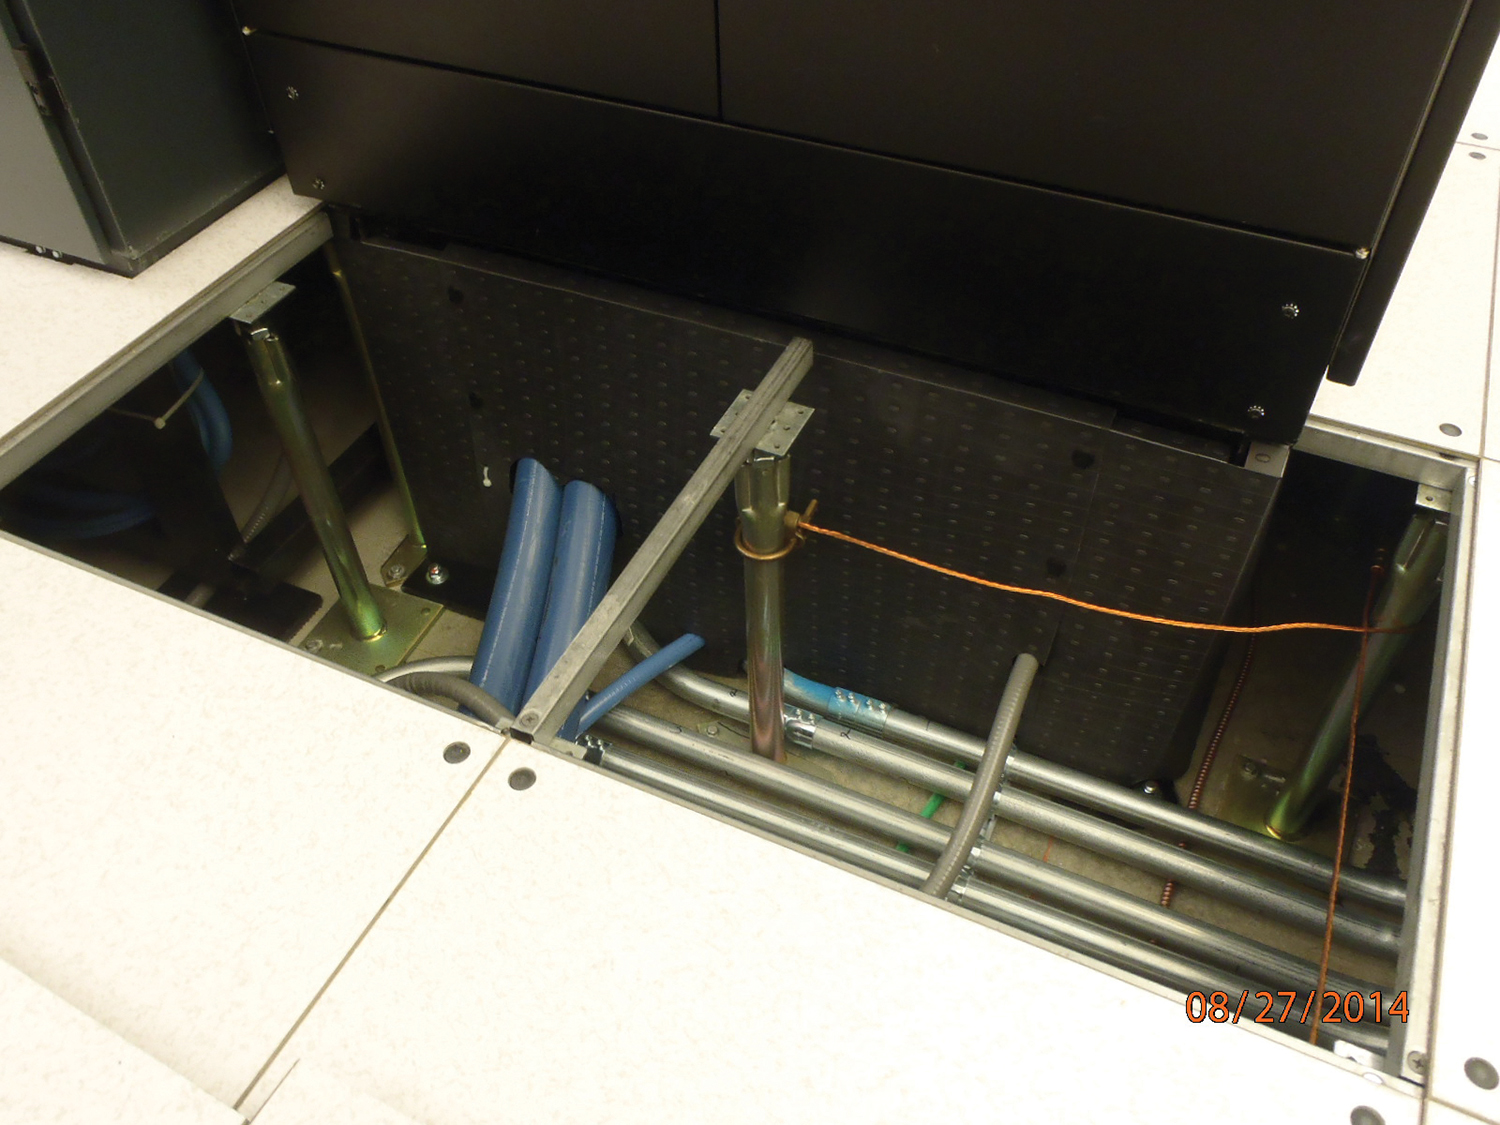 Under floor PDU Plenaform - No leak is too small; find the hole and plug it!